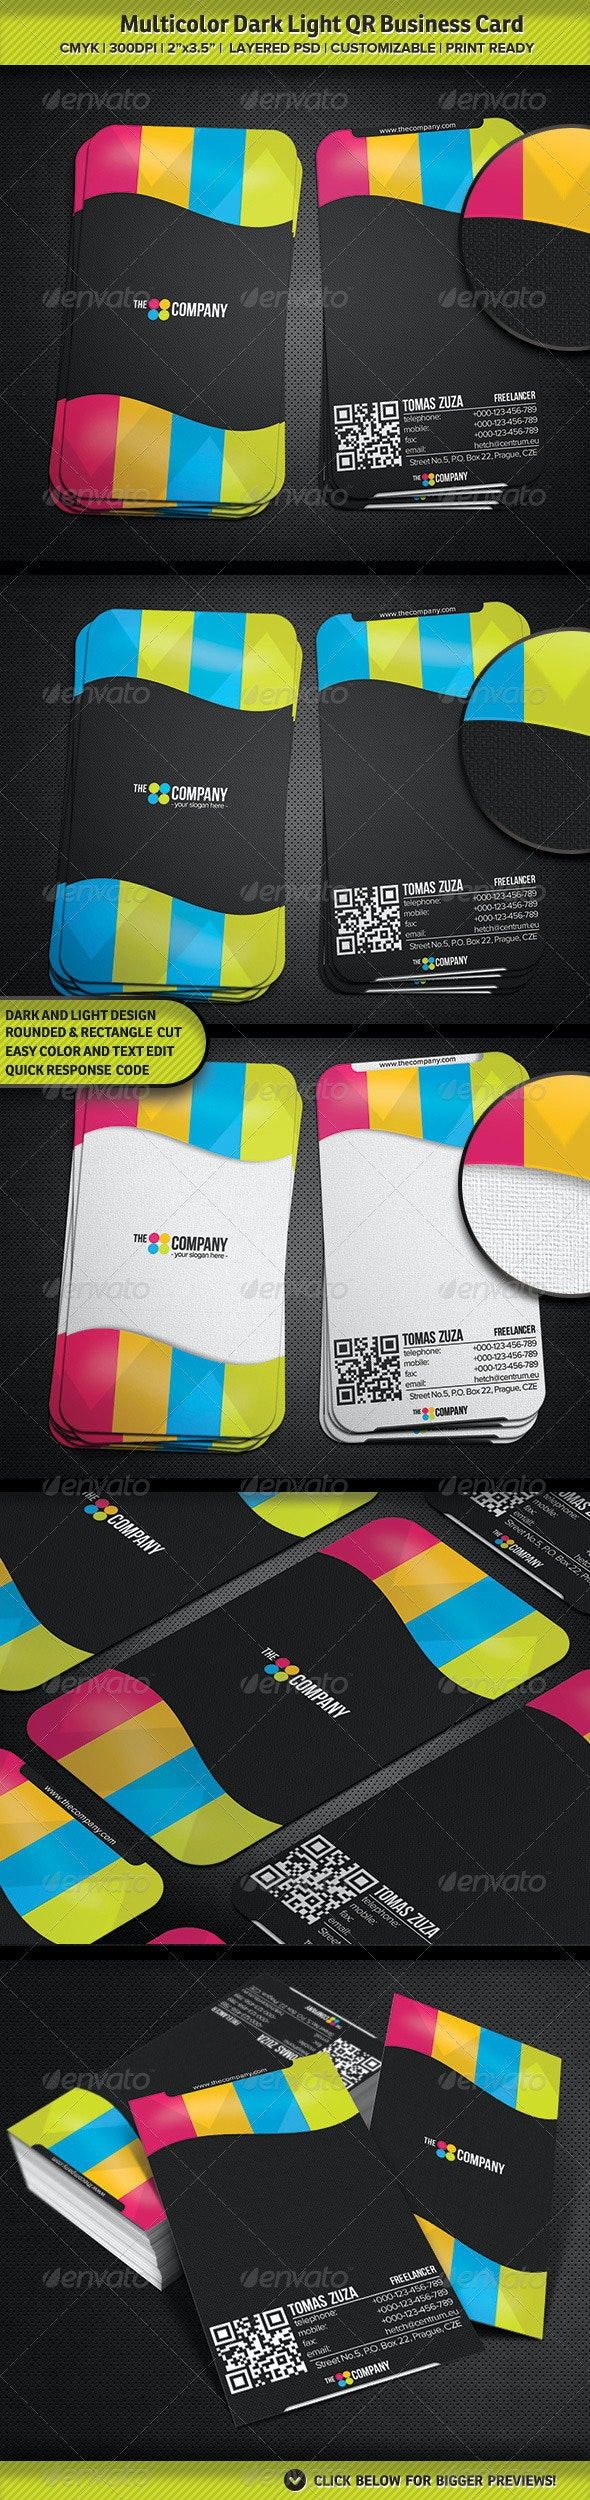 Multicolor Dark Light QR Business Card - Creative Business Cards